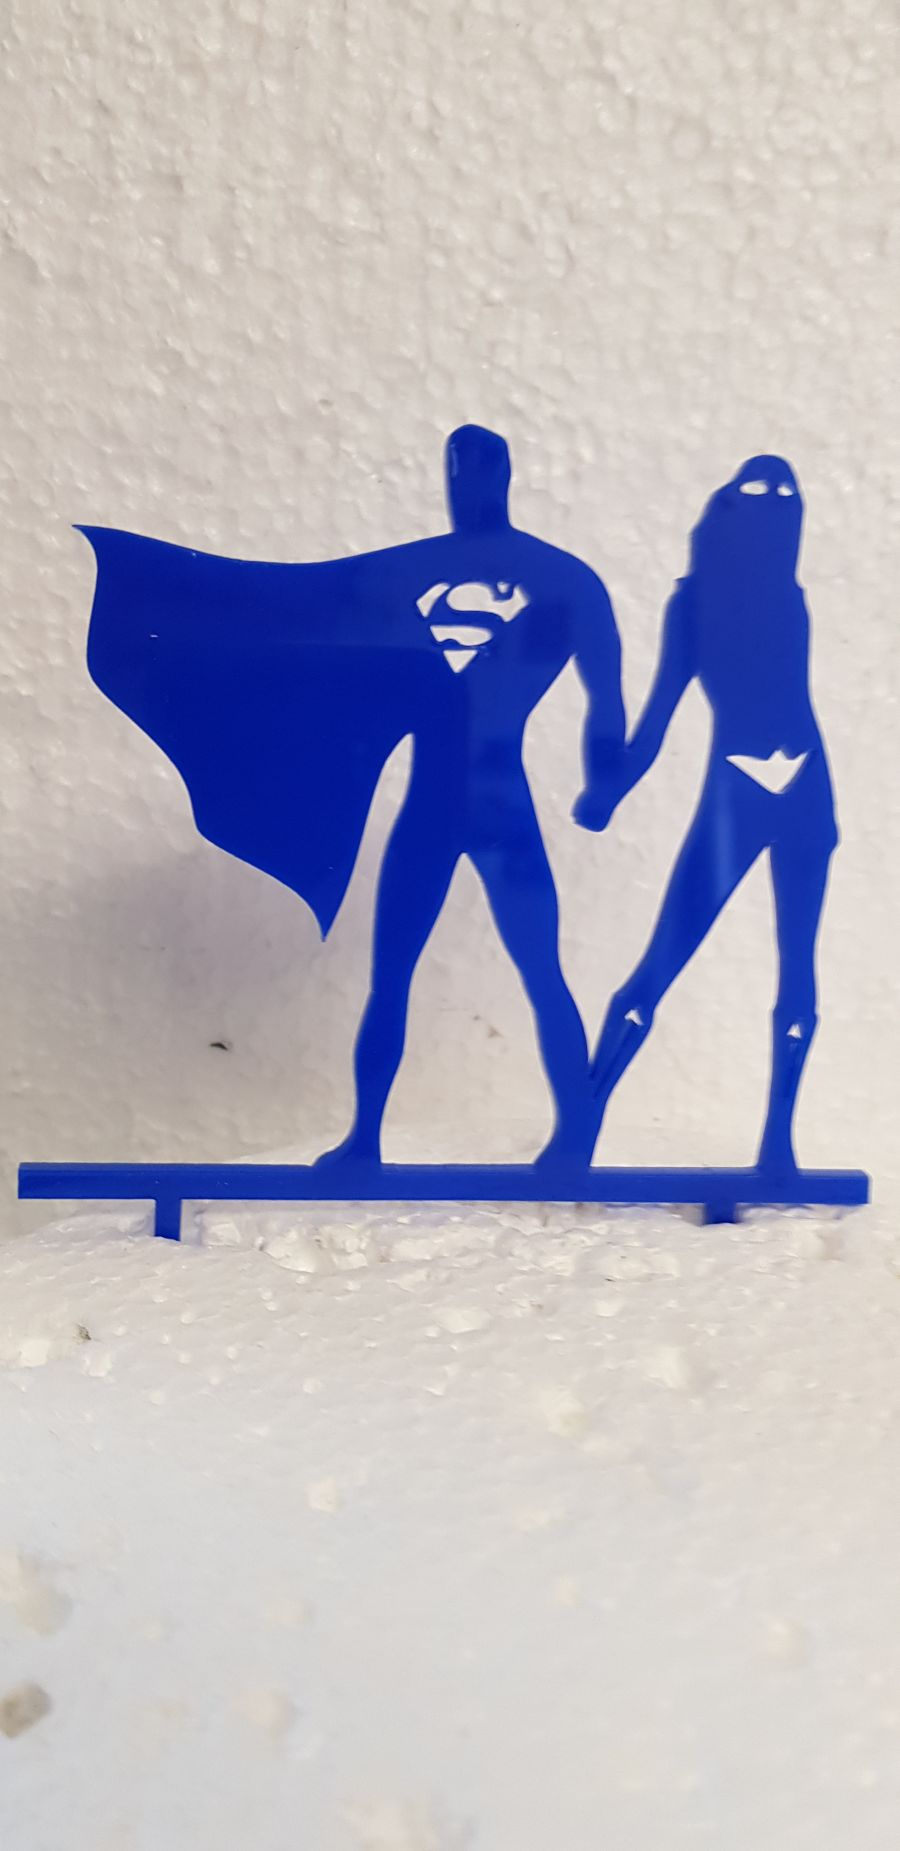 Superman and Wonder woman acrylic cake topper